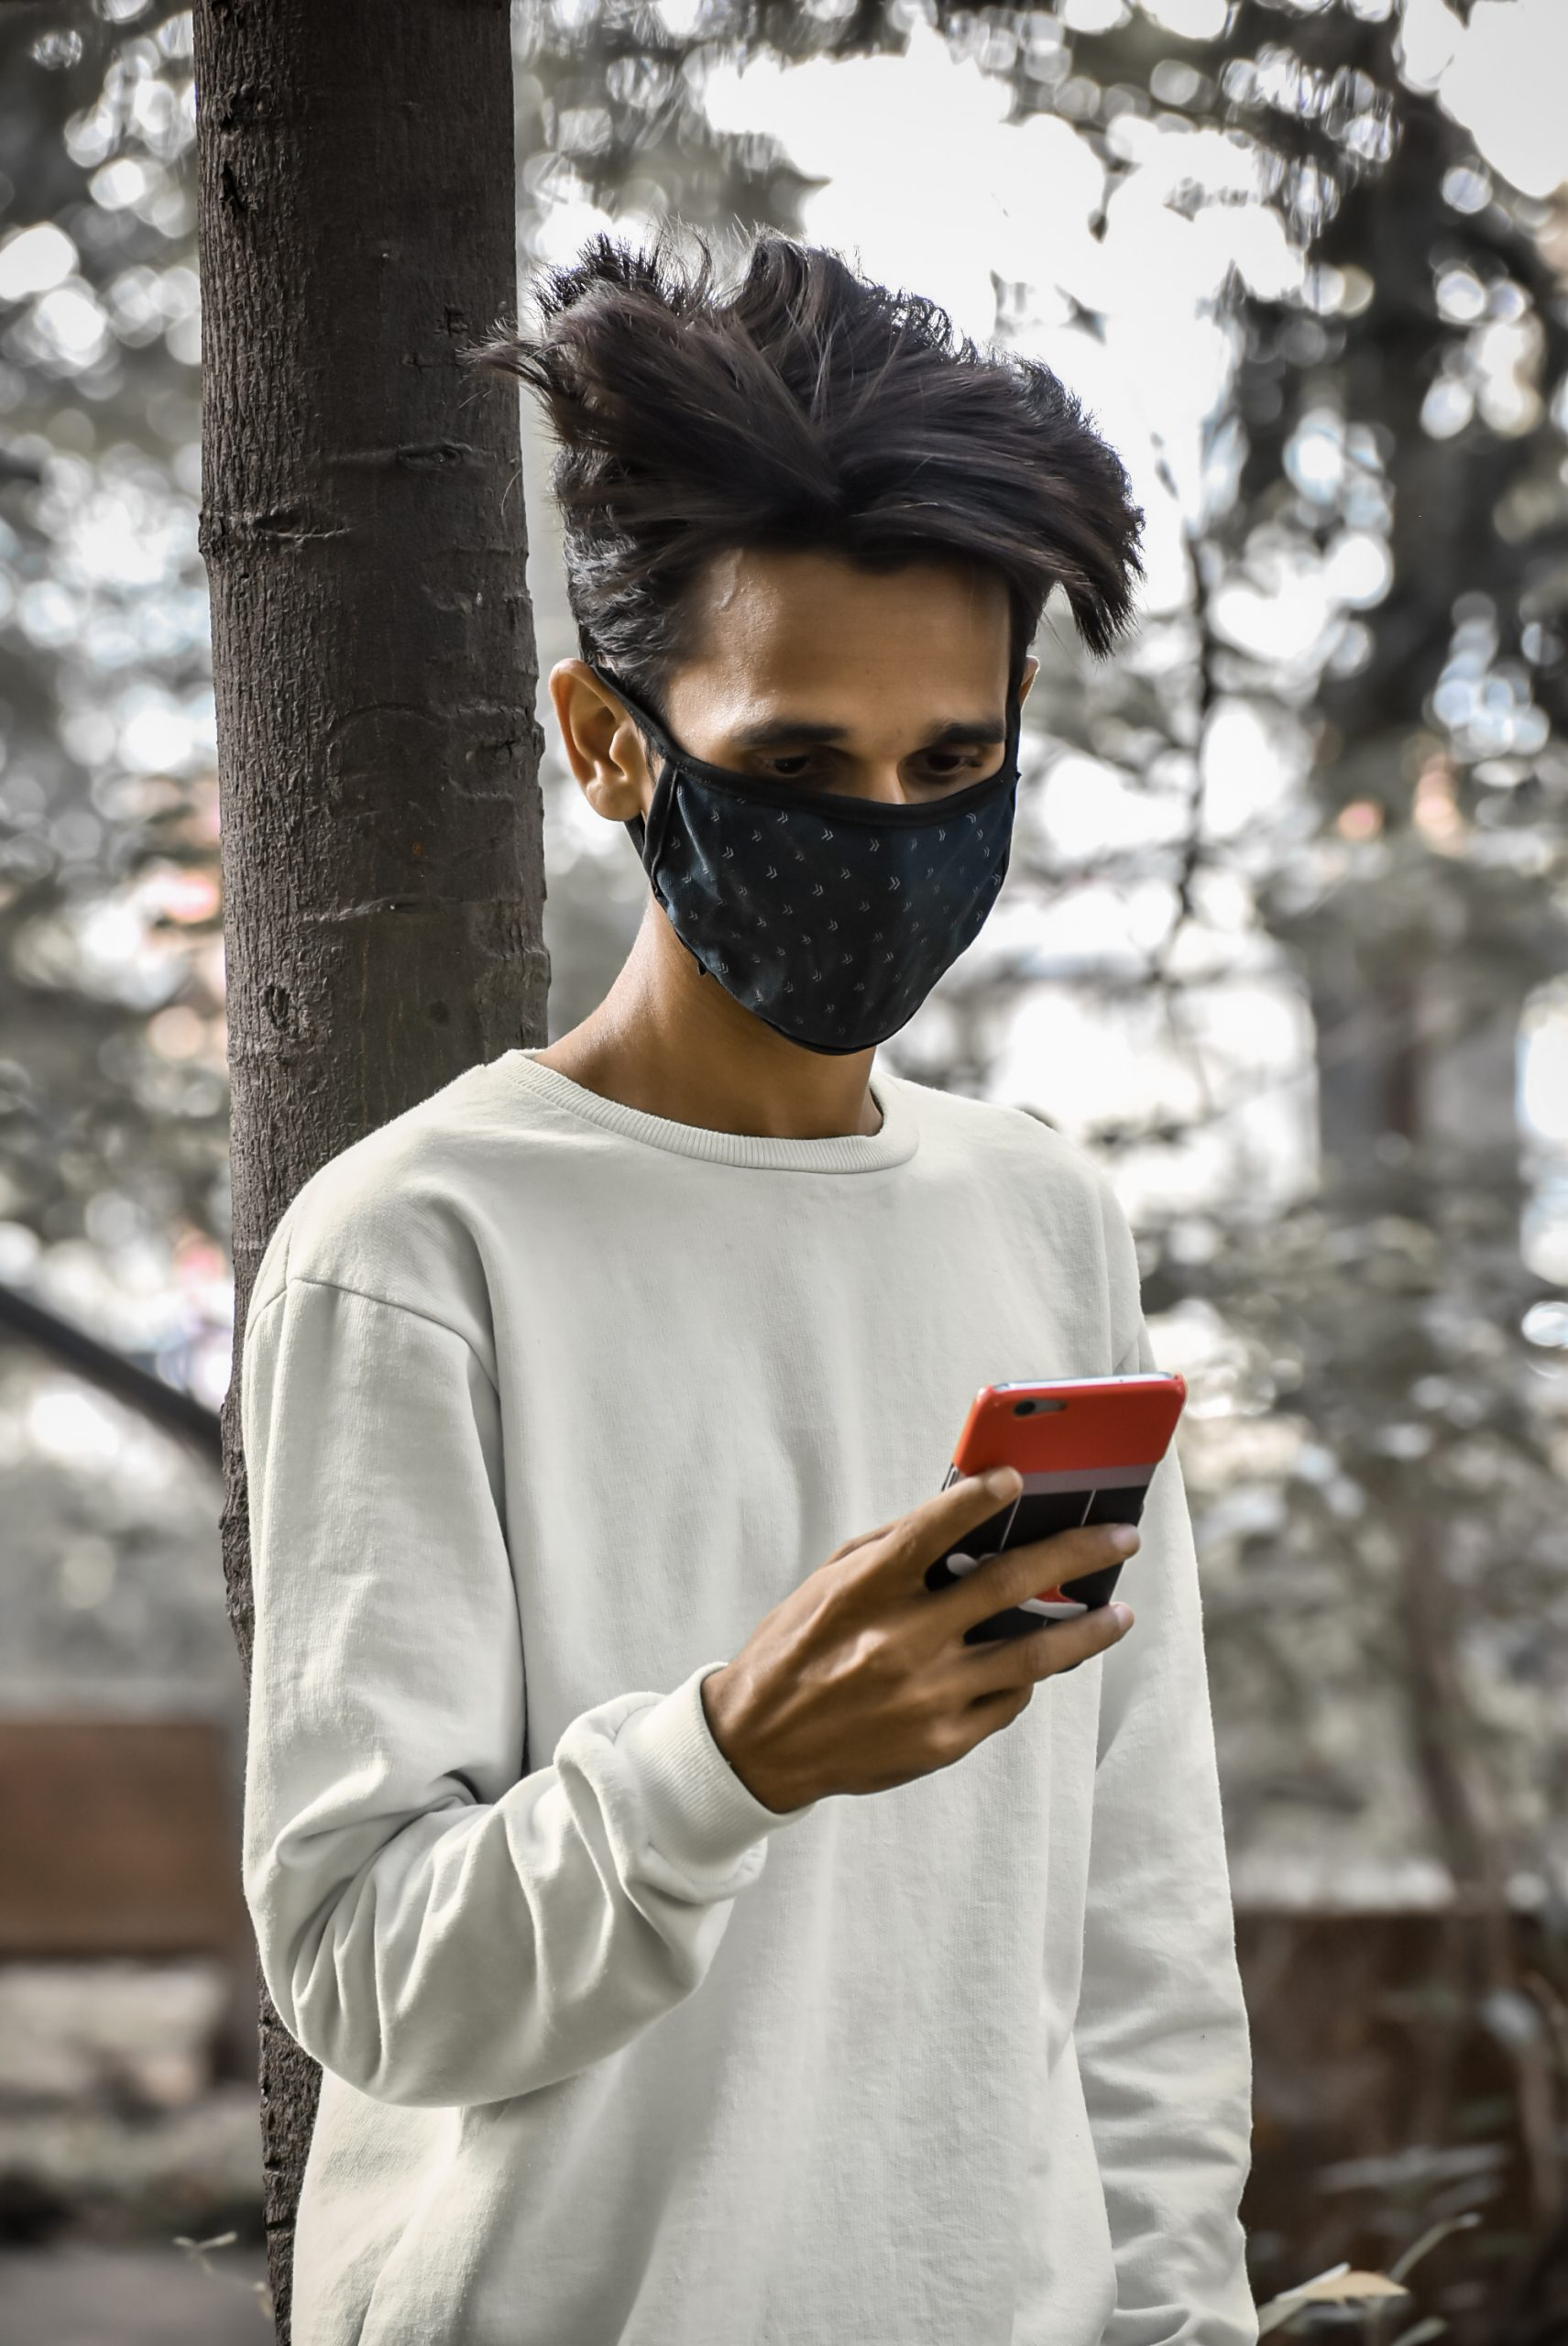 Boy using phone while wearing mask